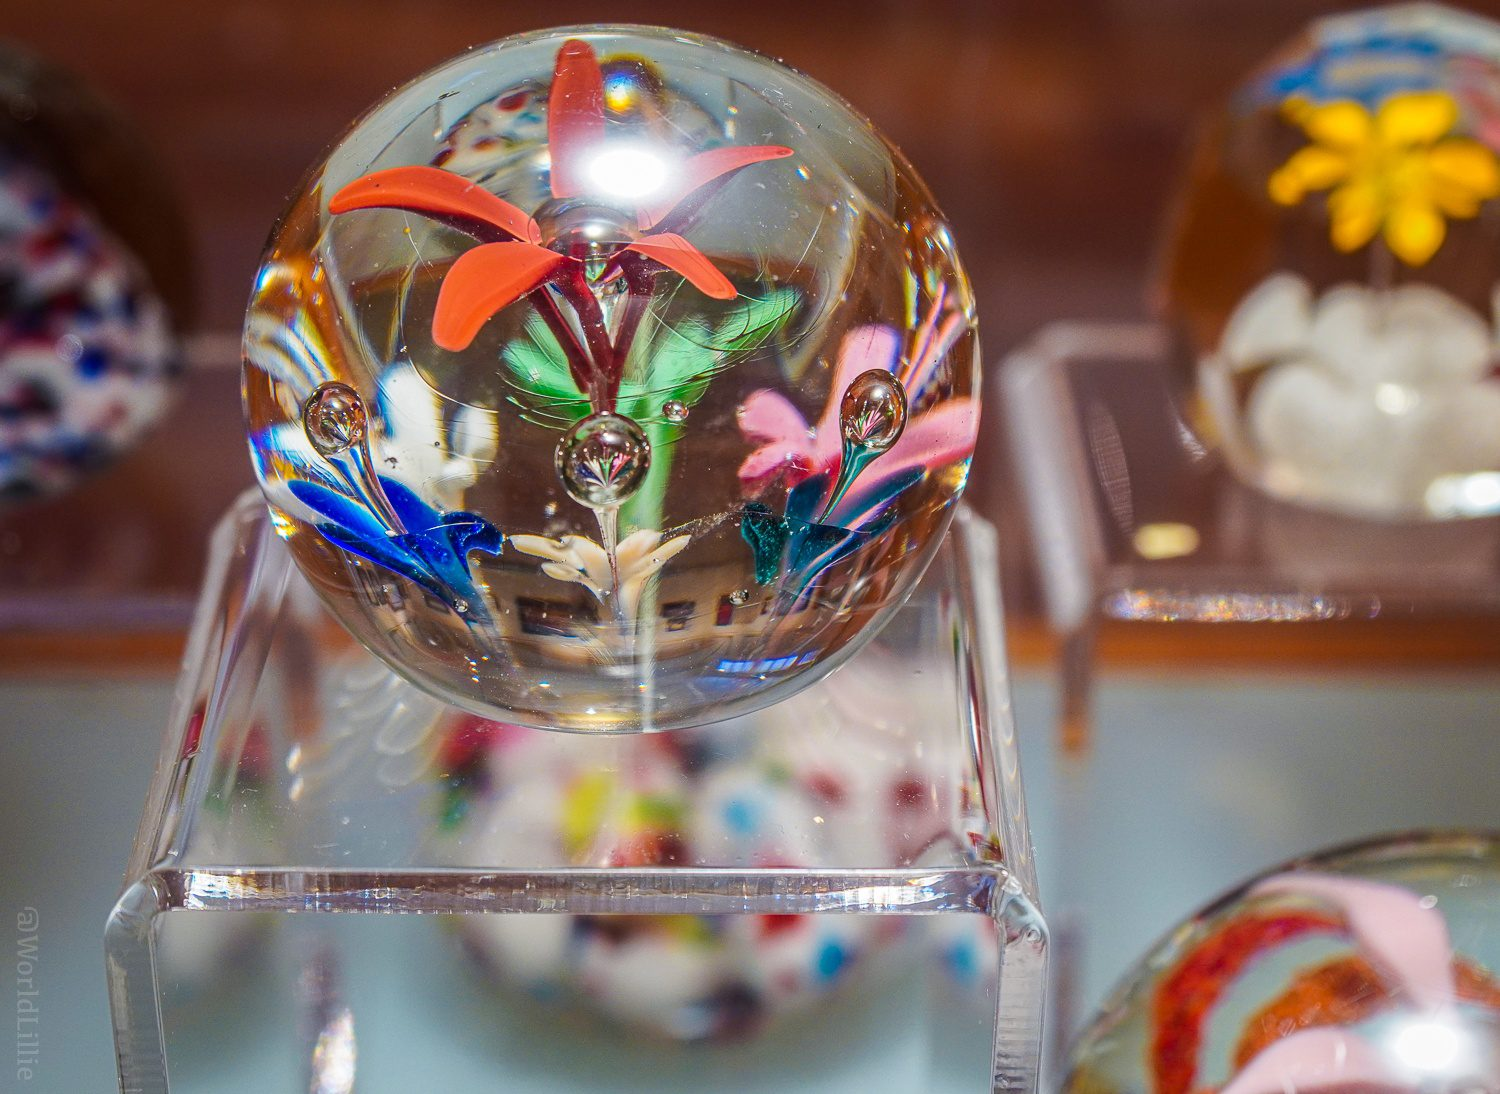 Flowers and bubbles in glass paperweights